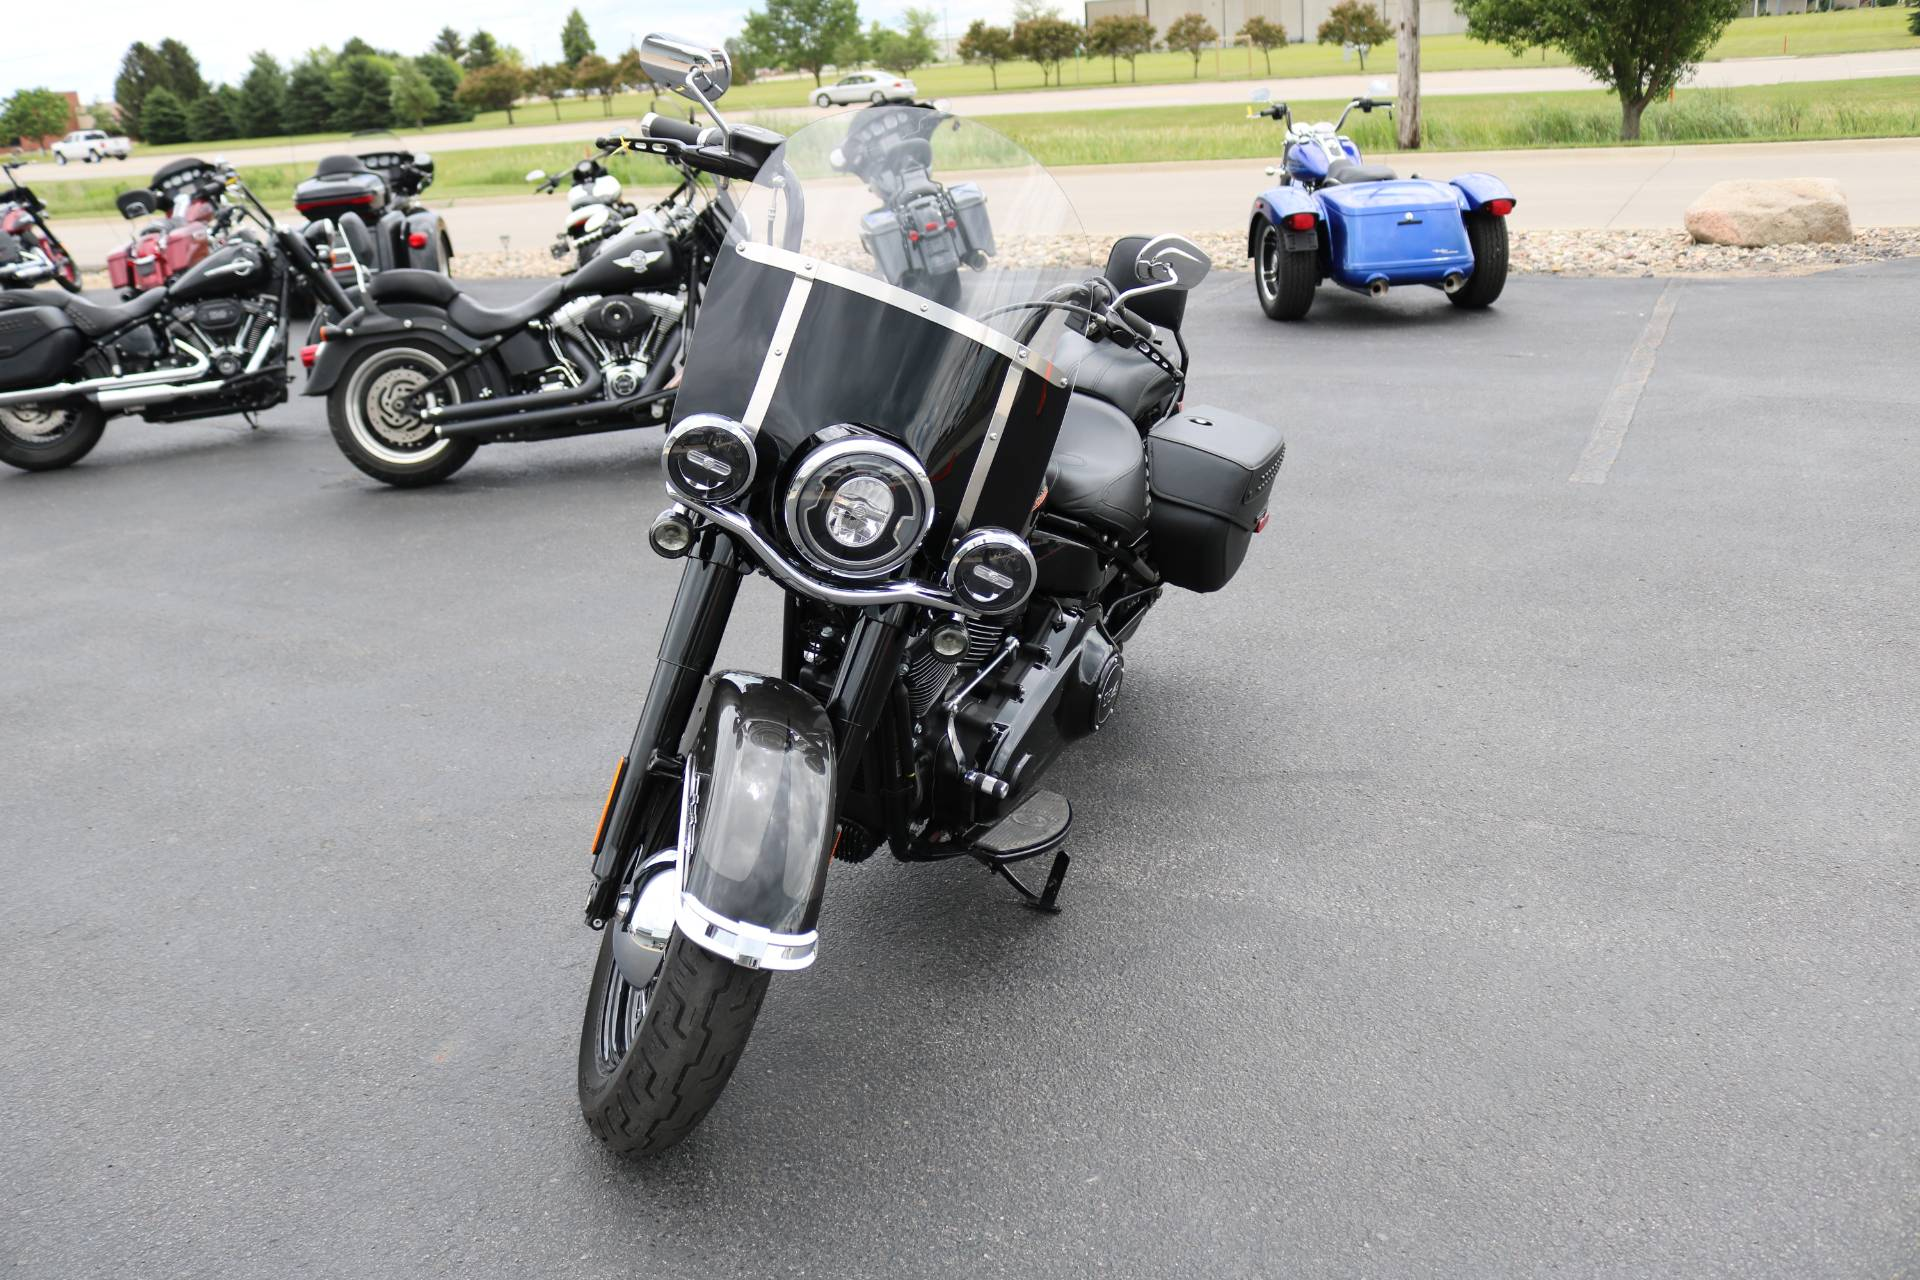 2019 Harley-Davidson Heritage Classic 114 in Carroll, Iowa - Photo 4